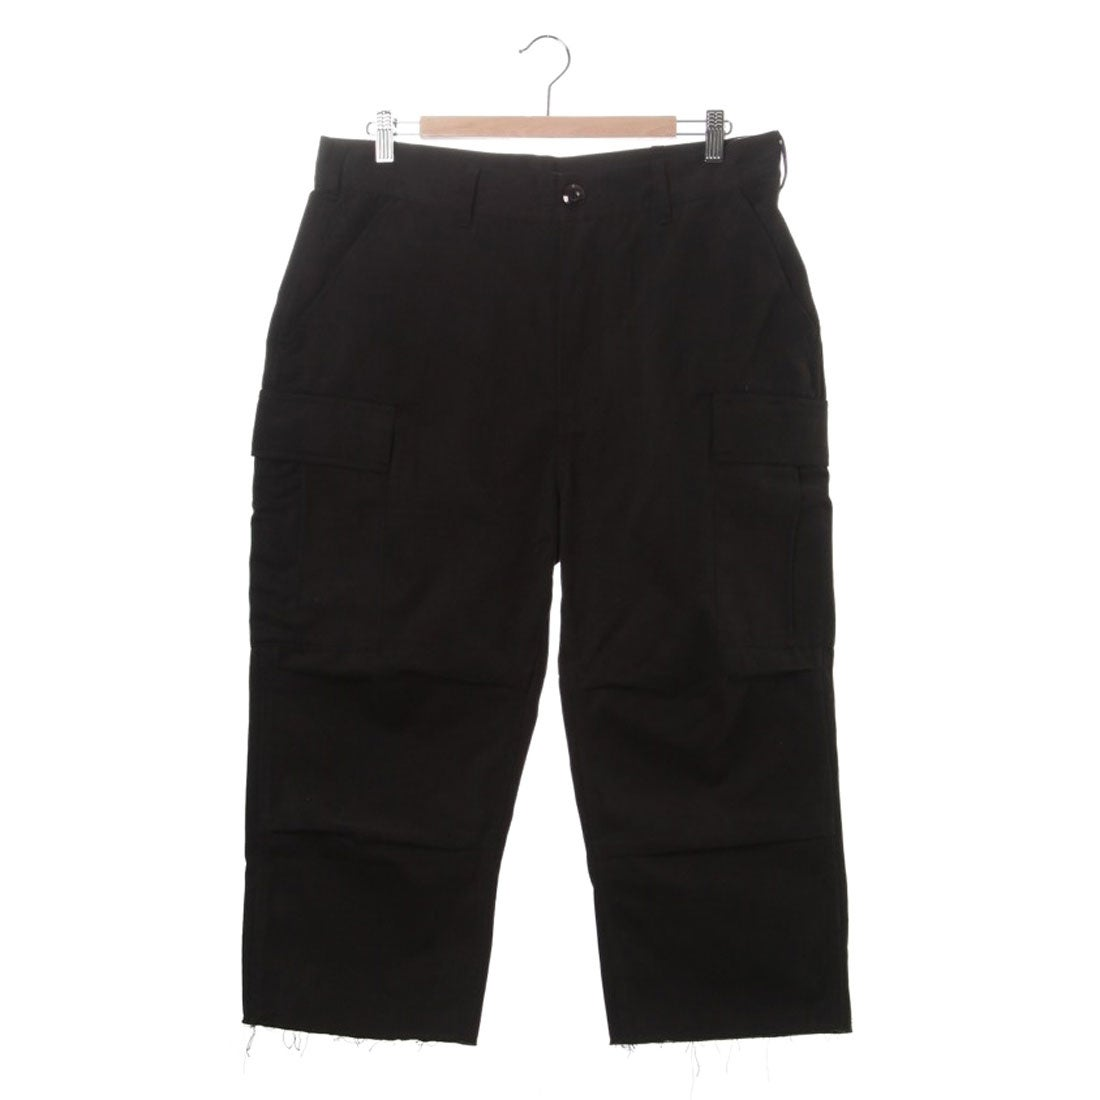 【SALE 70%OFF】アトモス atmos CROPPED CARGO PANT(BLACK)